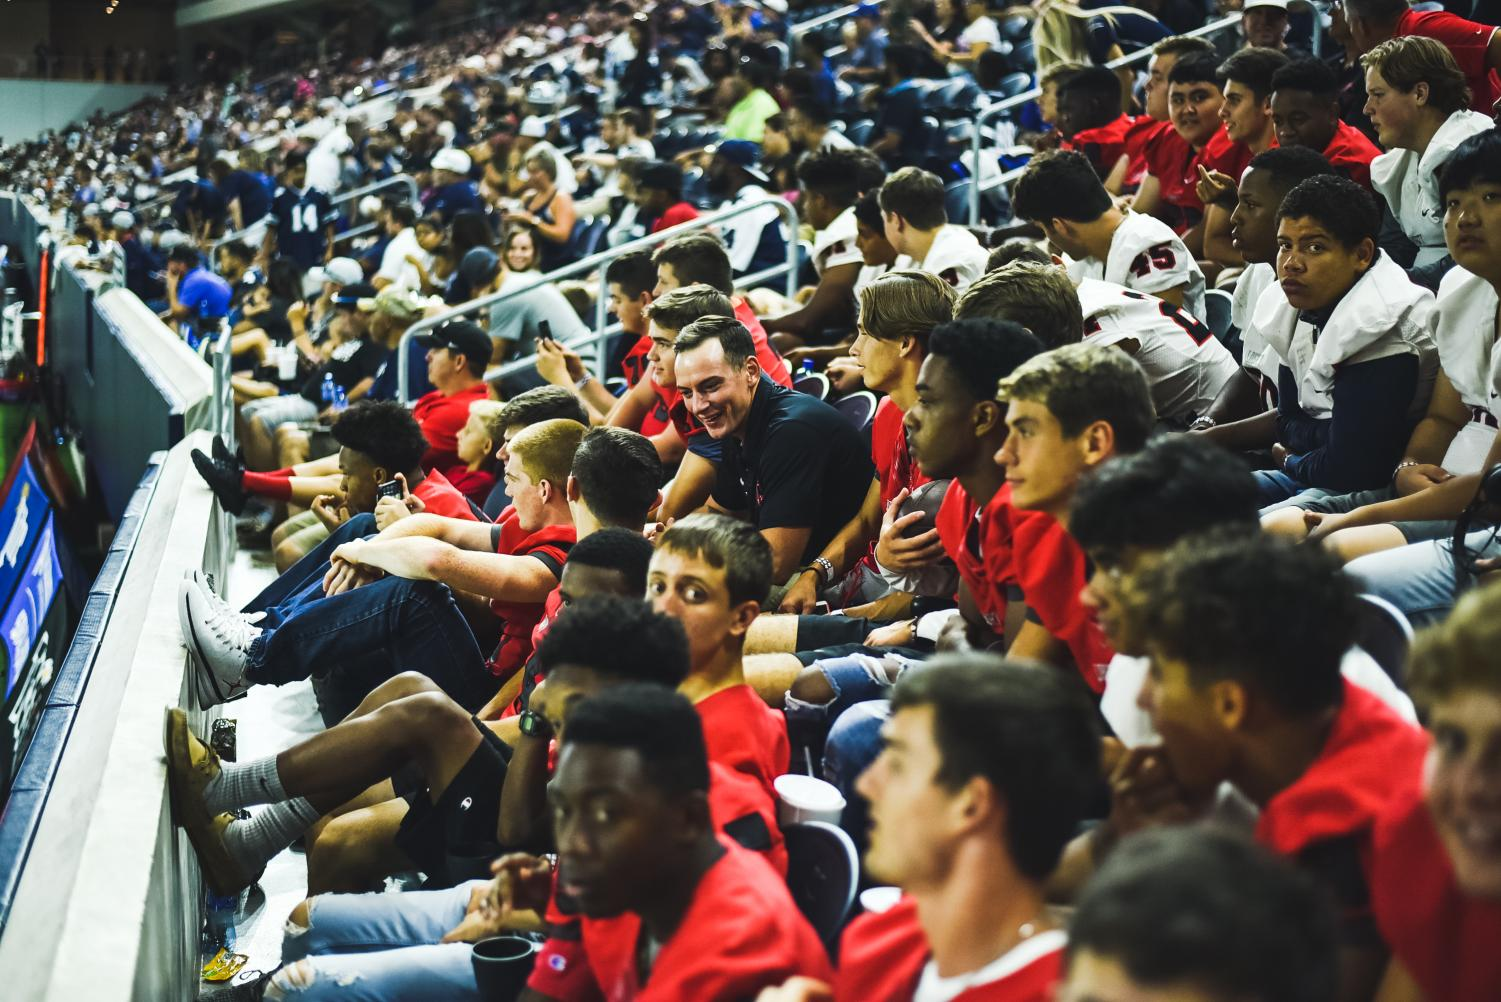 Filling+up+the+first+few+rows+on+the+home+sideline+of+the+Ford+Center%2C+the+Redhawks+football+team+takes+in+a+Cowboys+practice+on+Tuesday%2C+Aug.+21%2C+2018.+